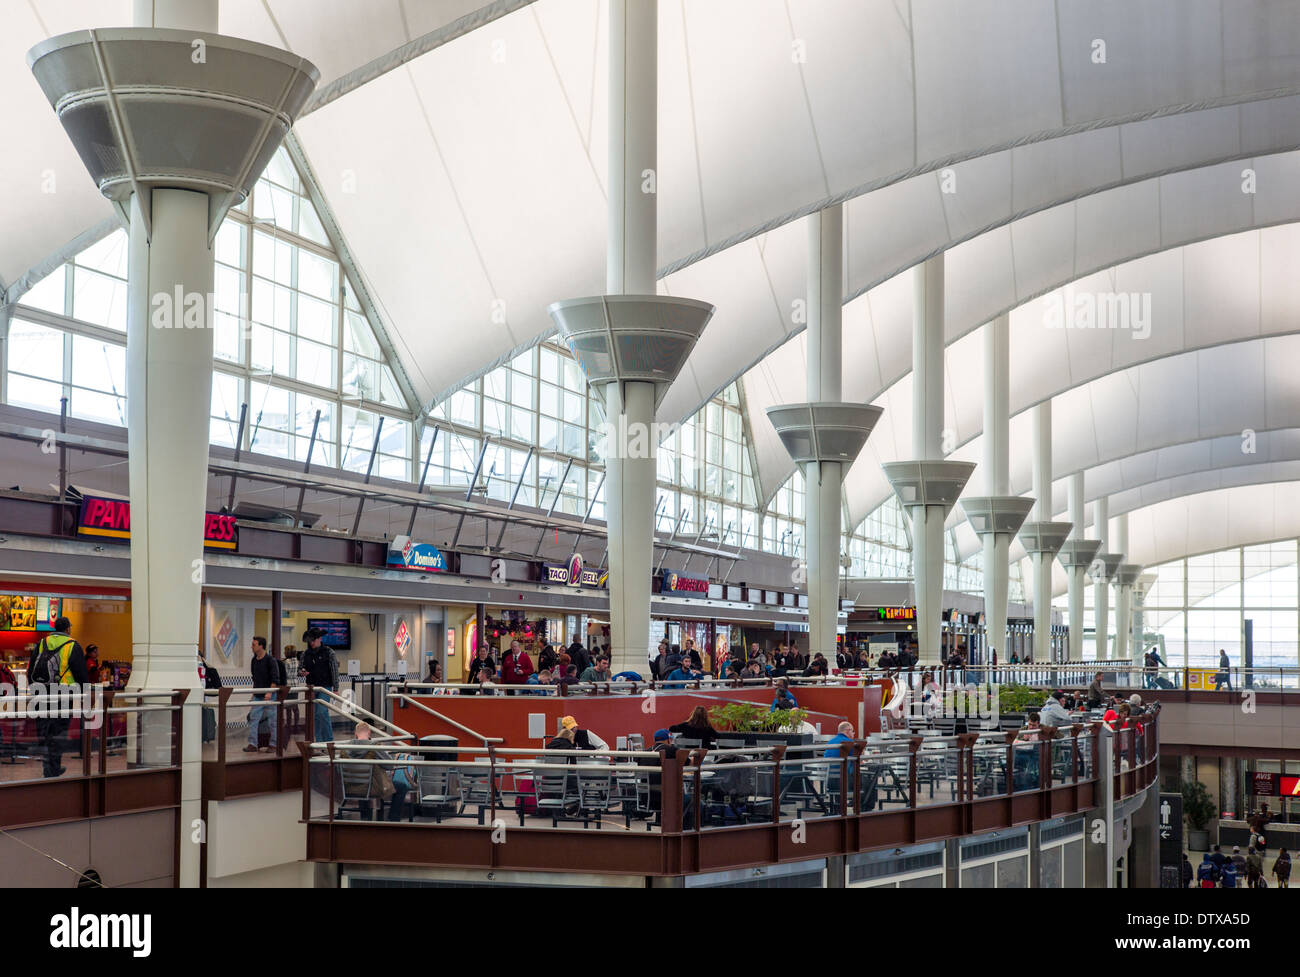 Jeppesen Terminal Denver International Airport Colorado USA. Canopy roof design by Fentress & Roof Canopy Stock Photos u0026 Roof Canopy Stock Images - Alamy memphite.com